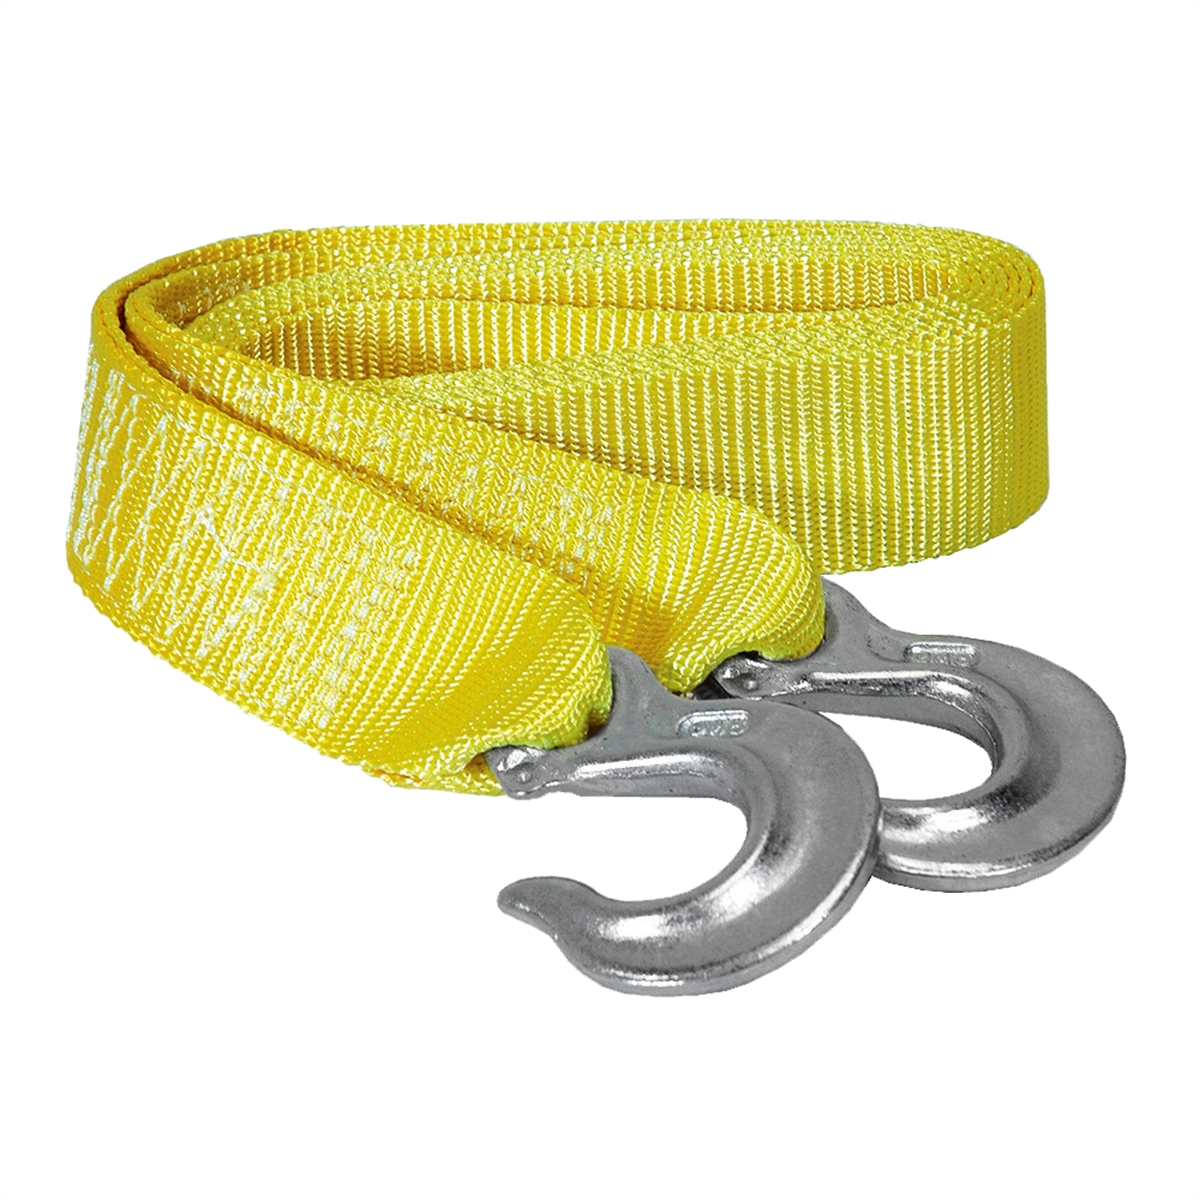 Tow Straps With Forged Hooks 2In. x 15Ft. 10,000#